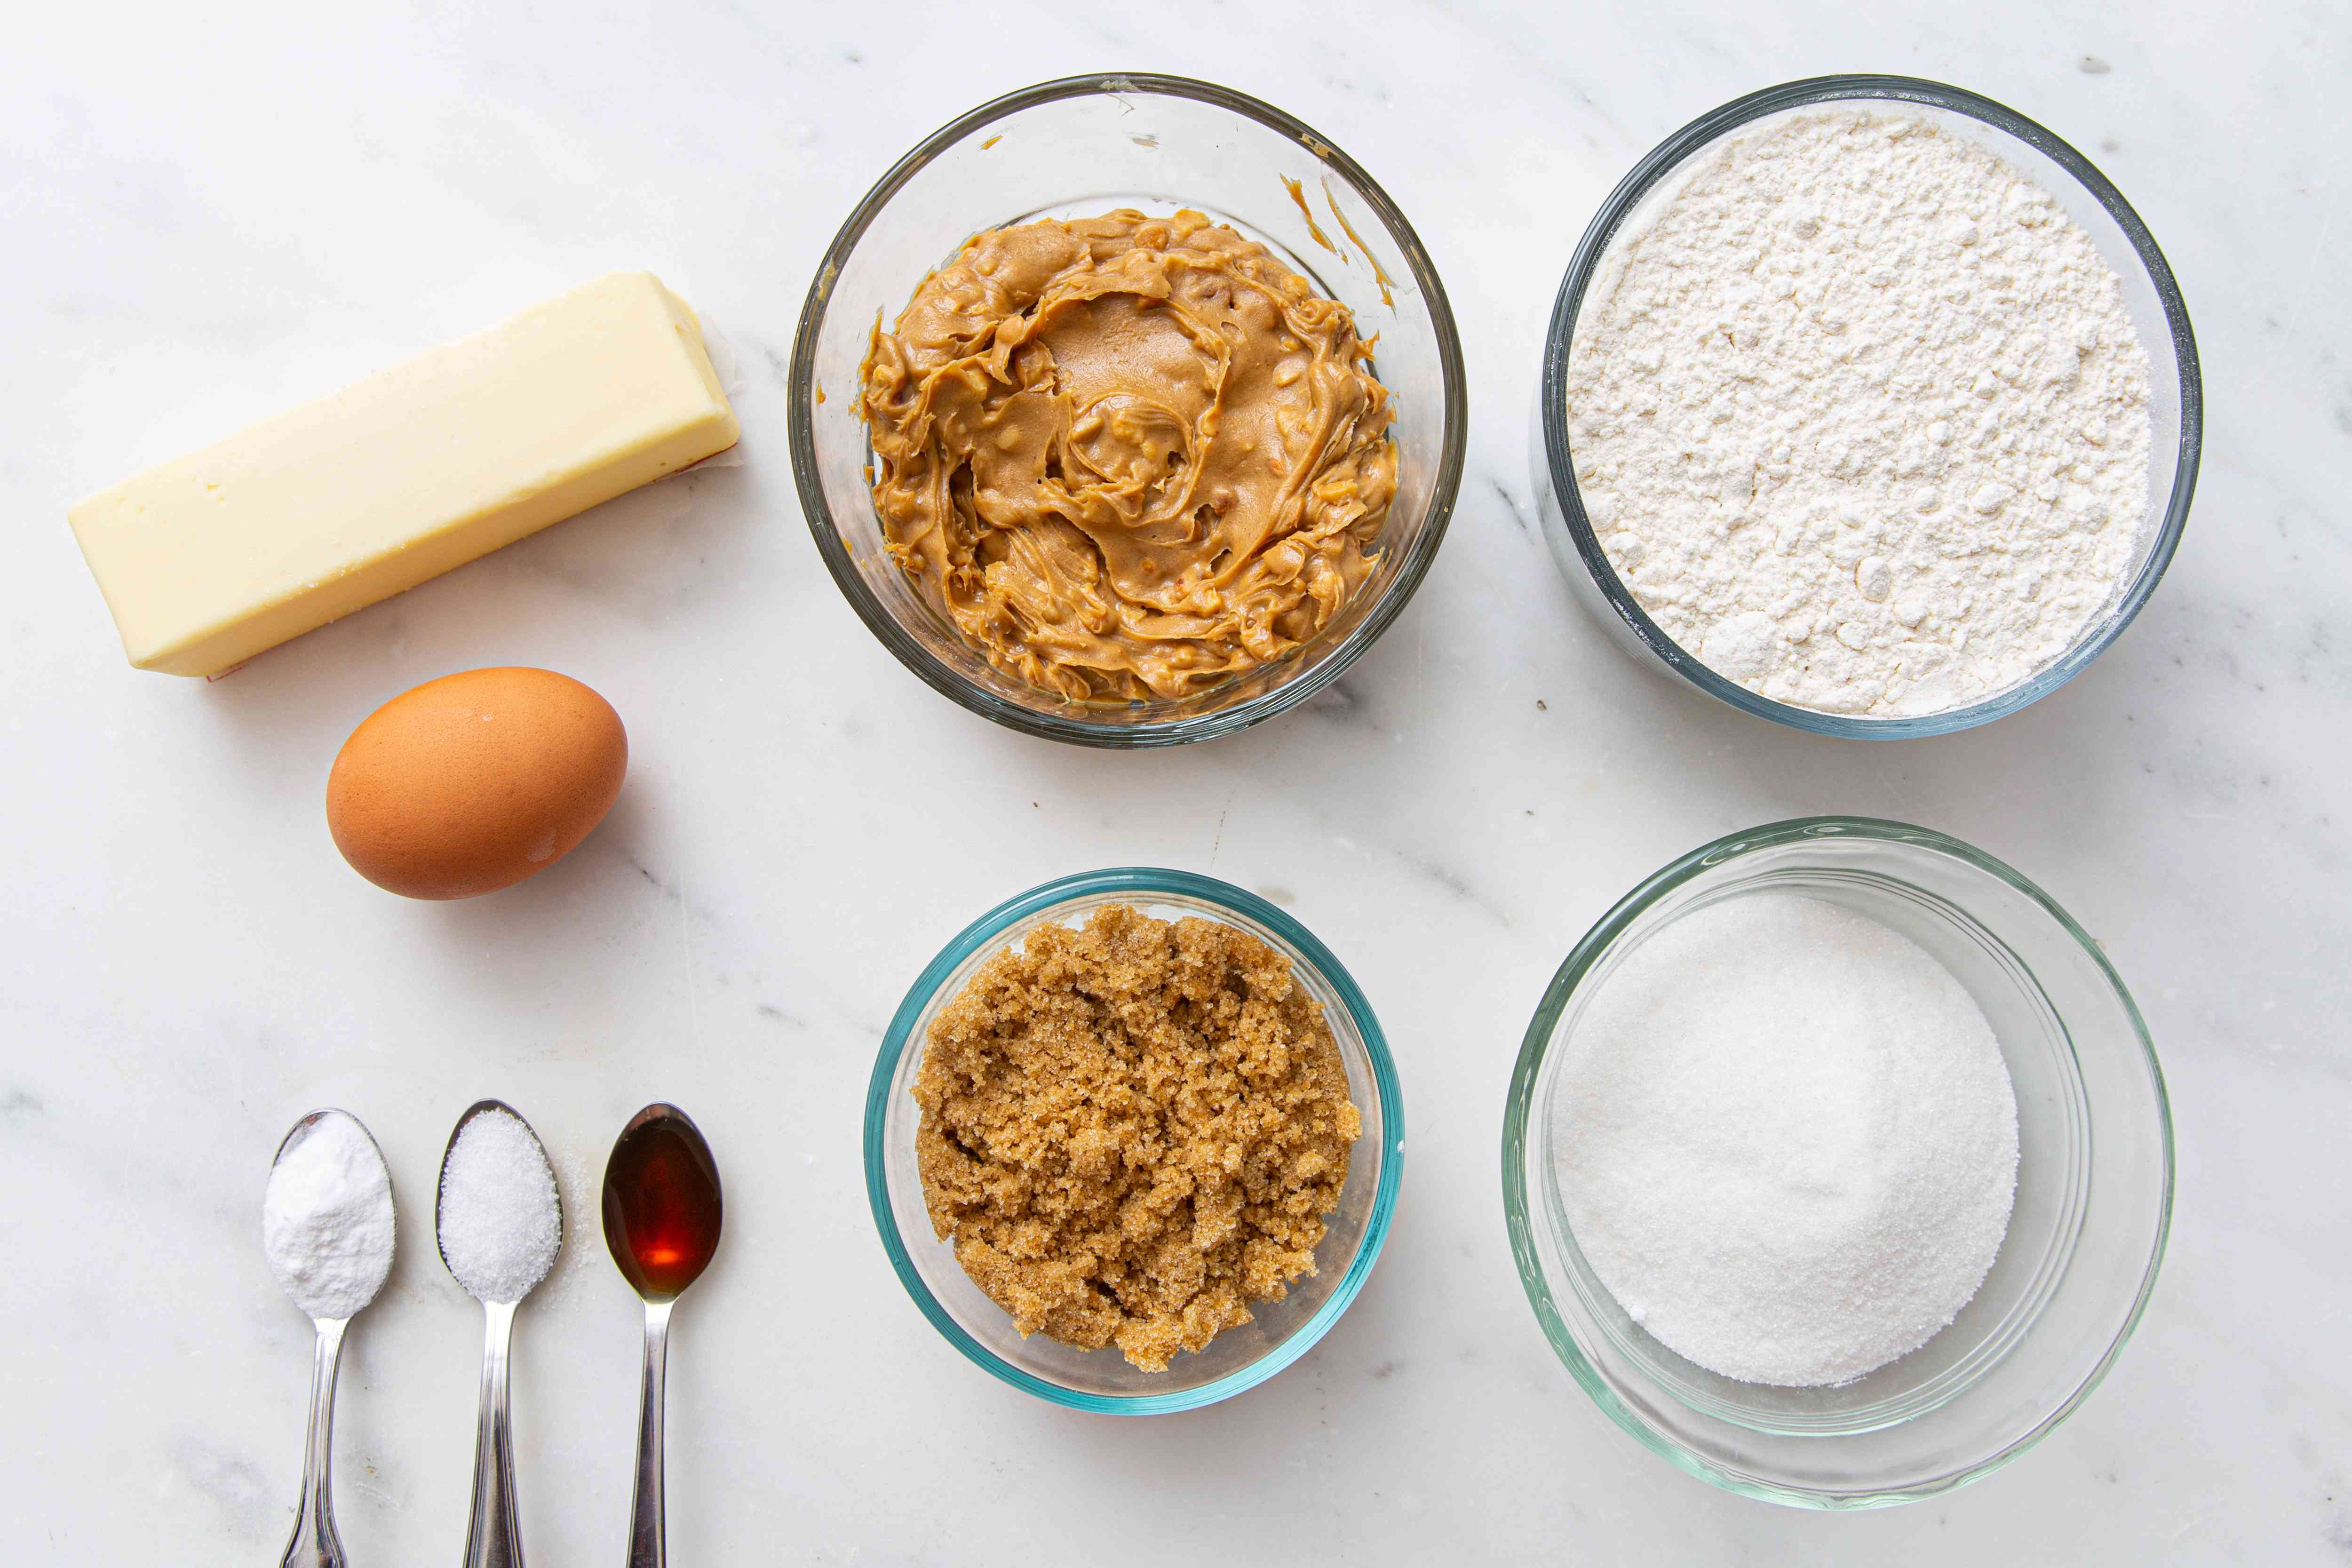 Ingredients for crunchy peanut butter cookies